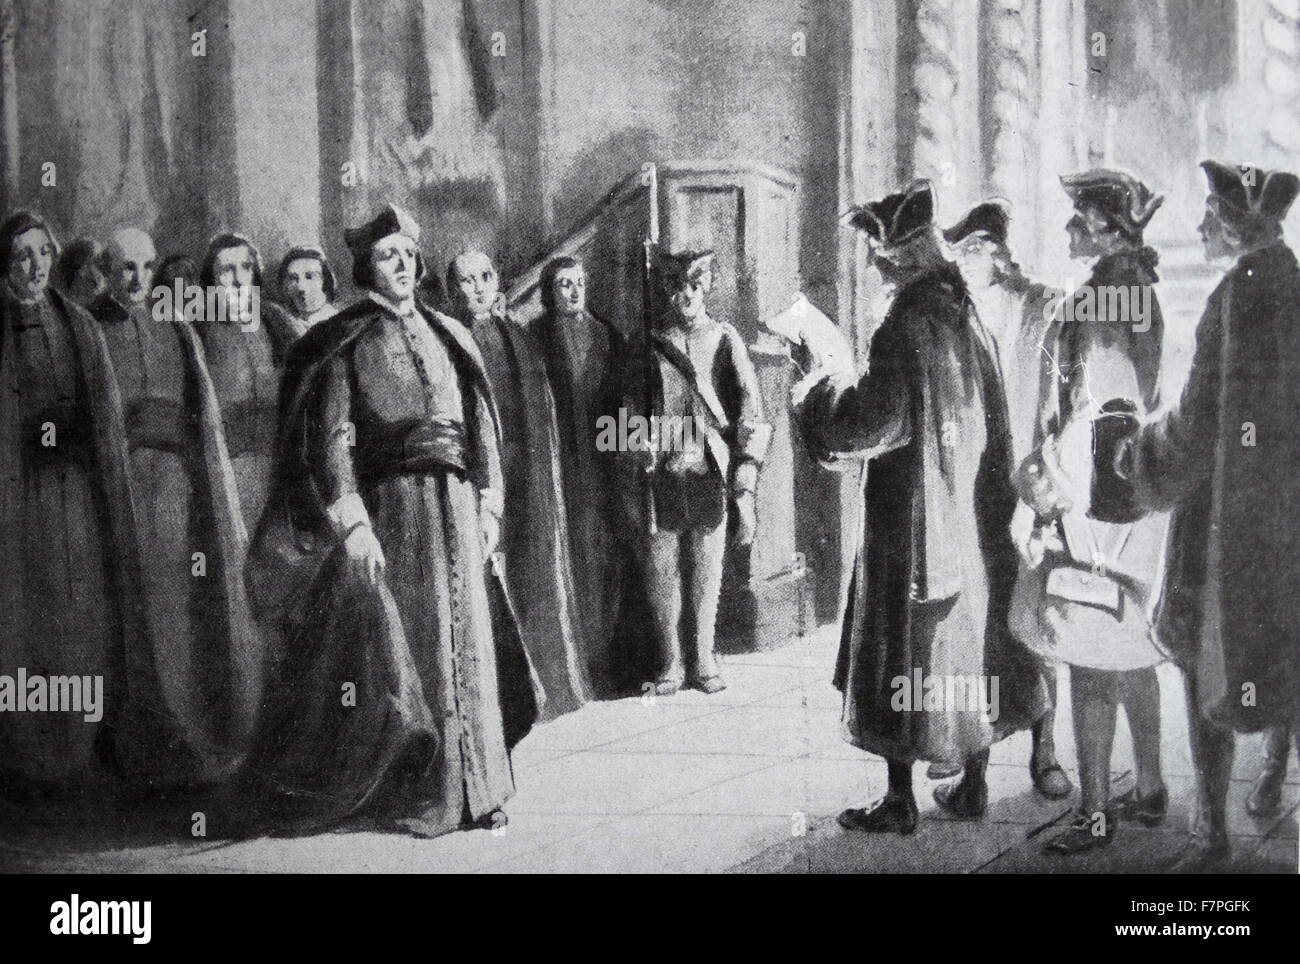 The expulsion and suppression of the Jesuits in the Spanish Empire in 1767 - Stock Image